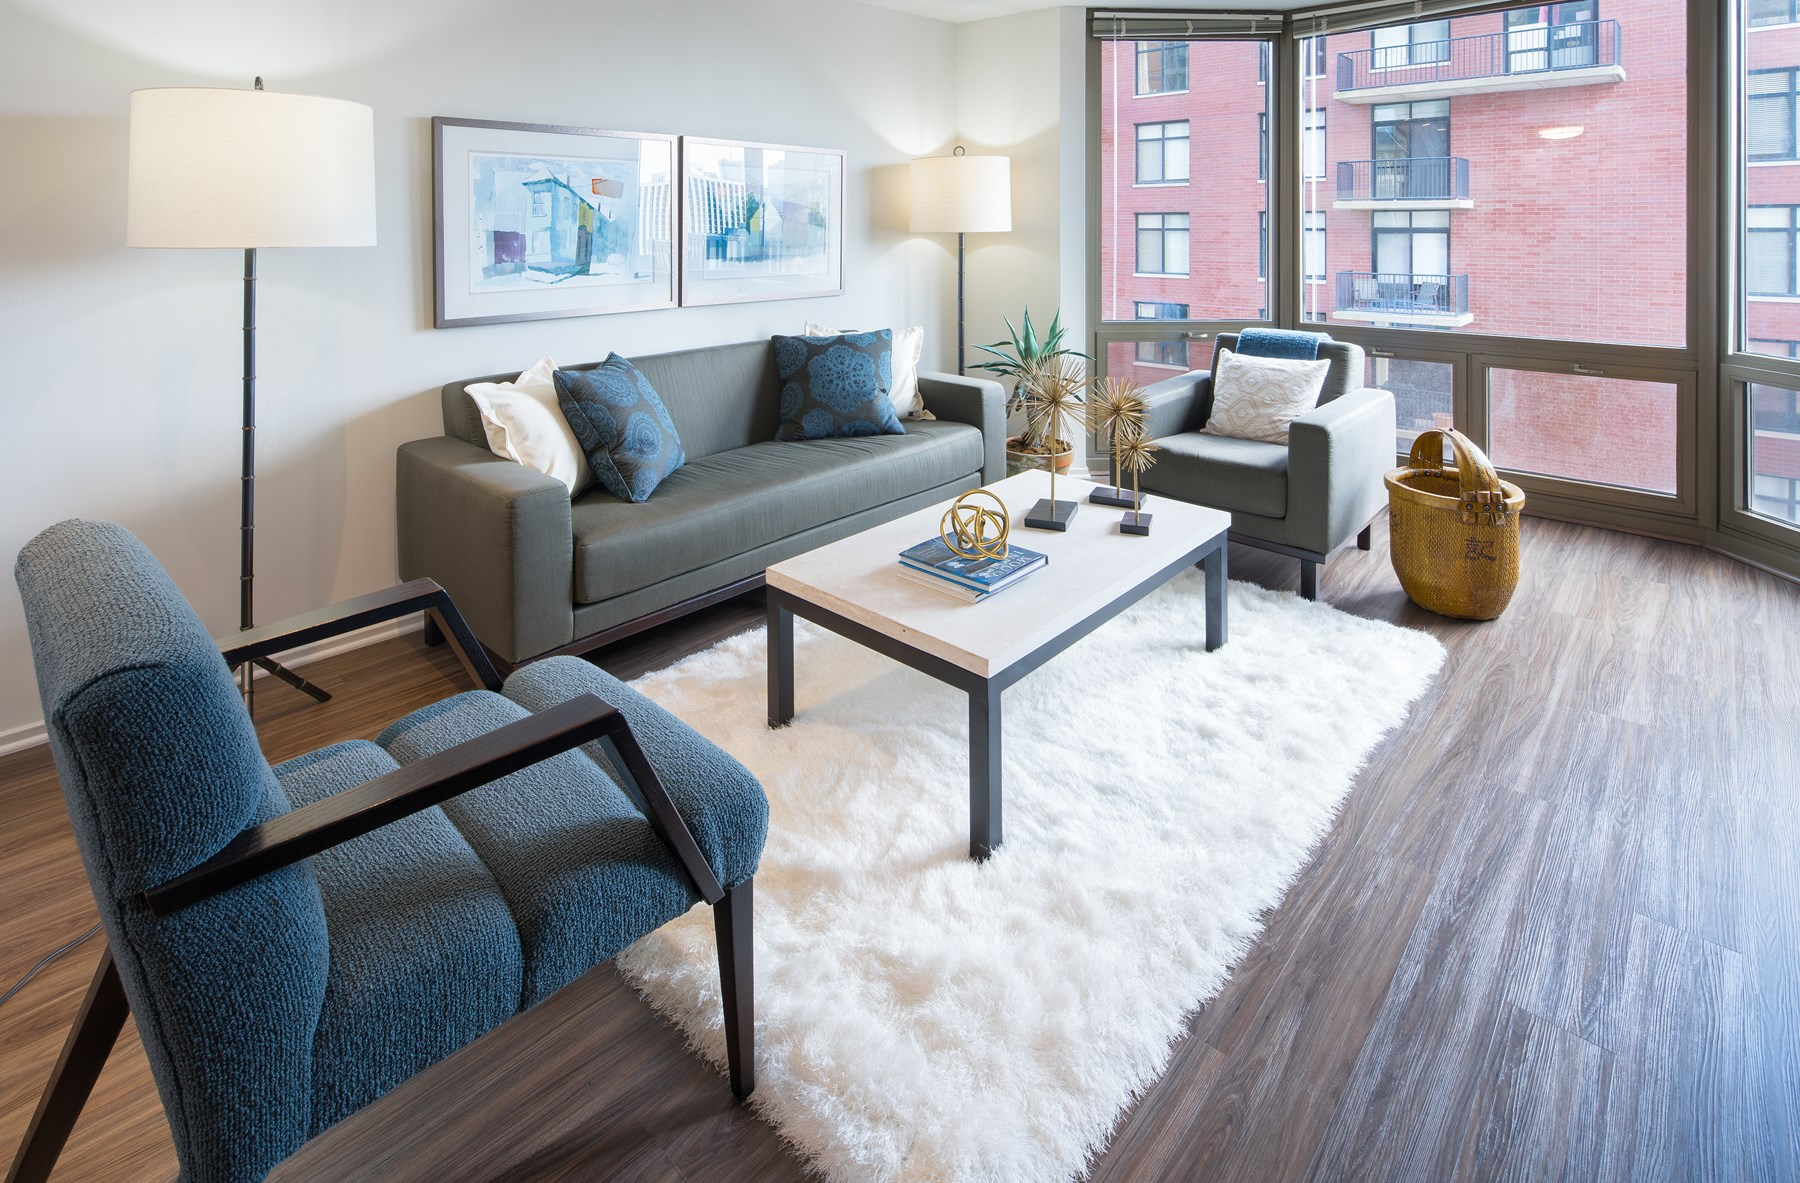 Best apartment hunting service in Chicago - Elm Street Plaza